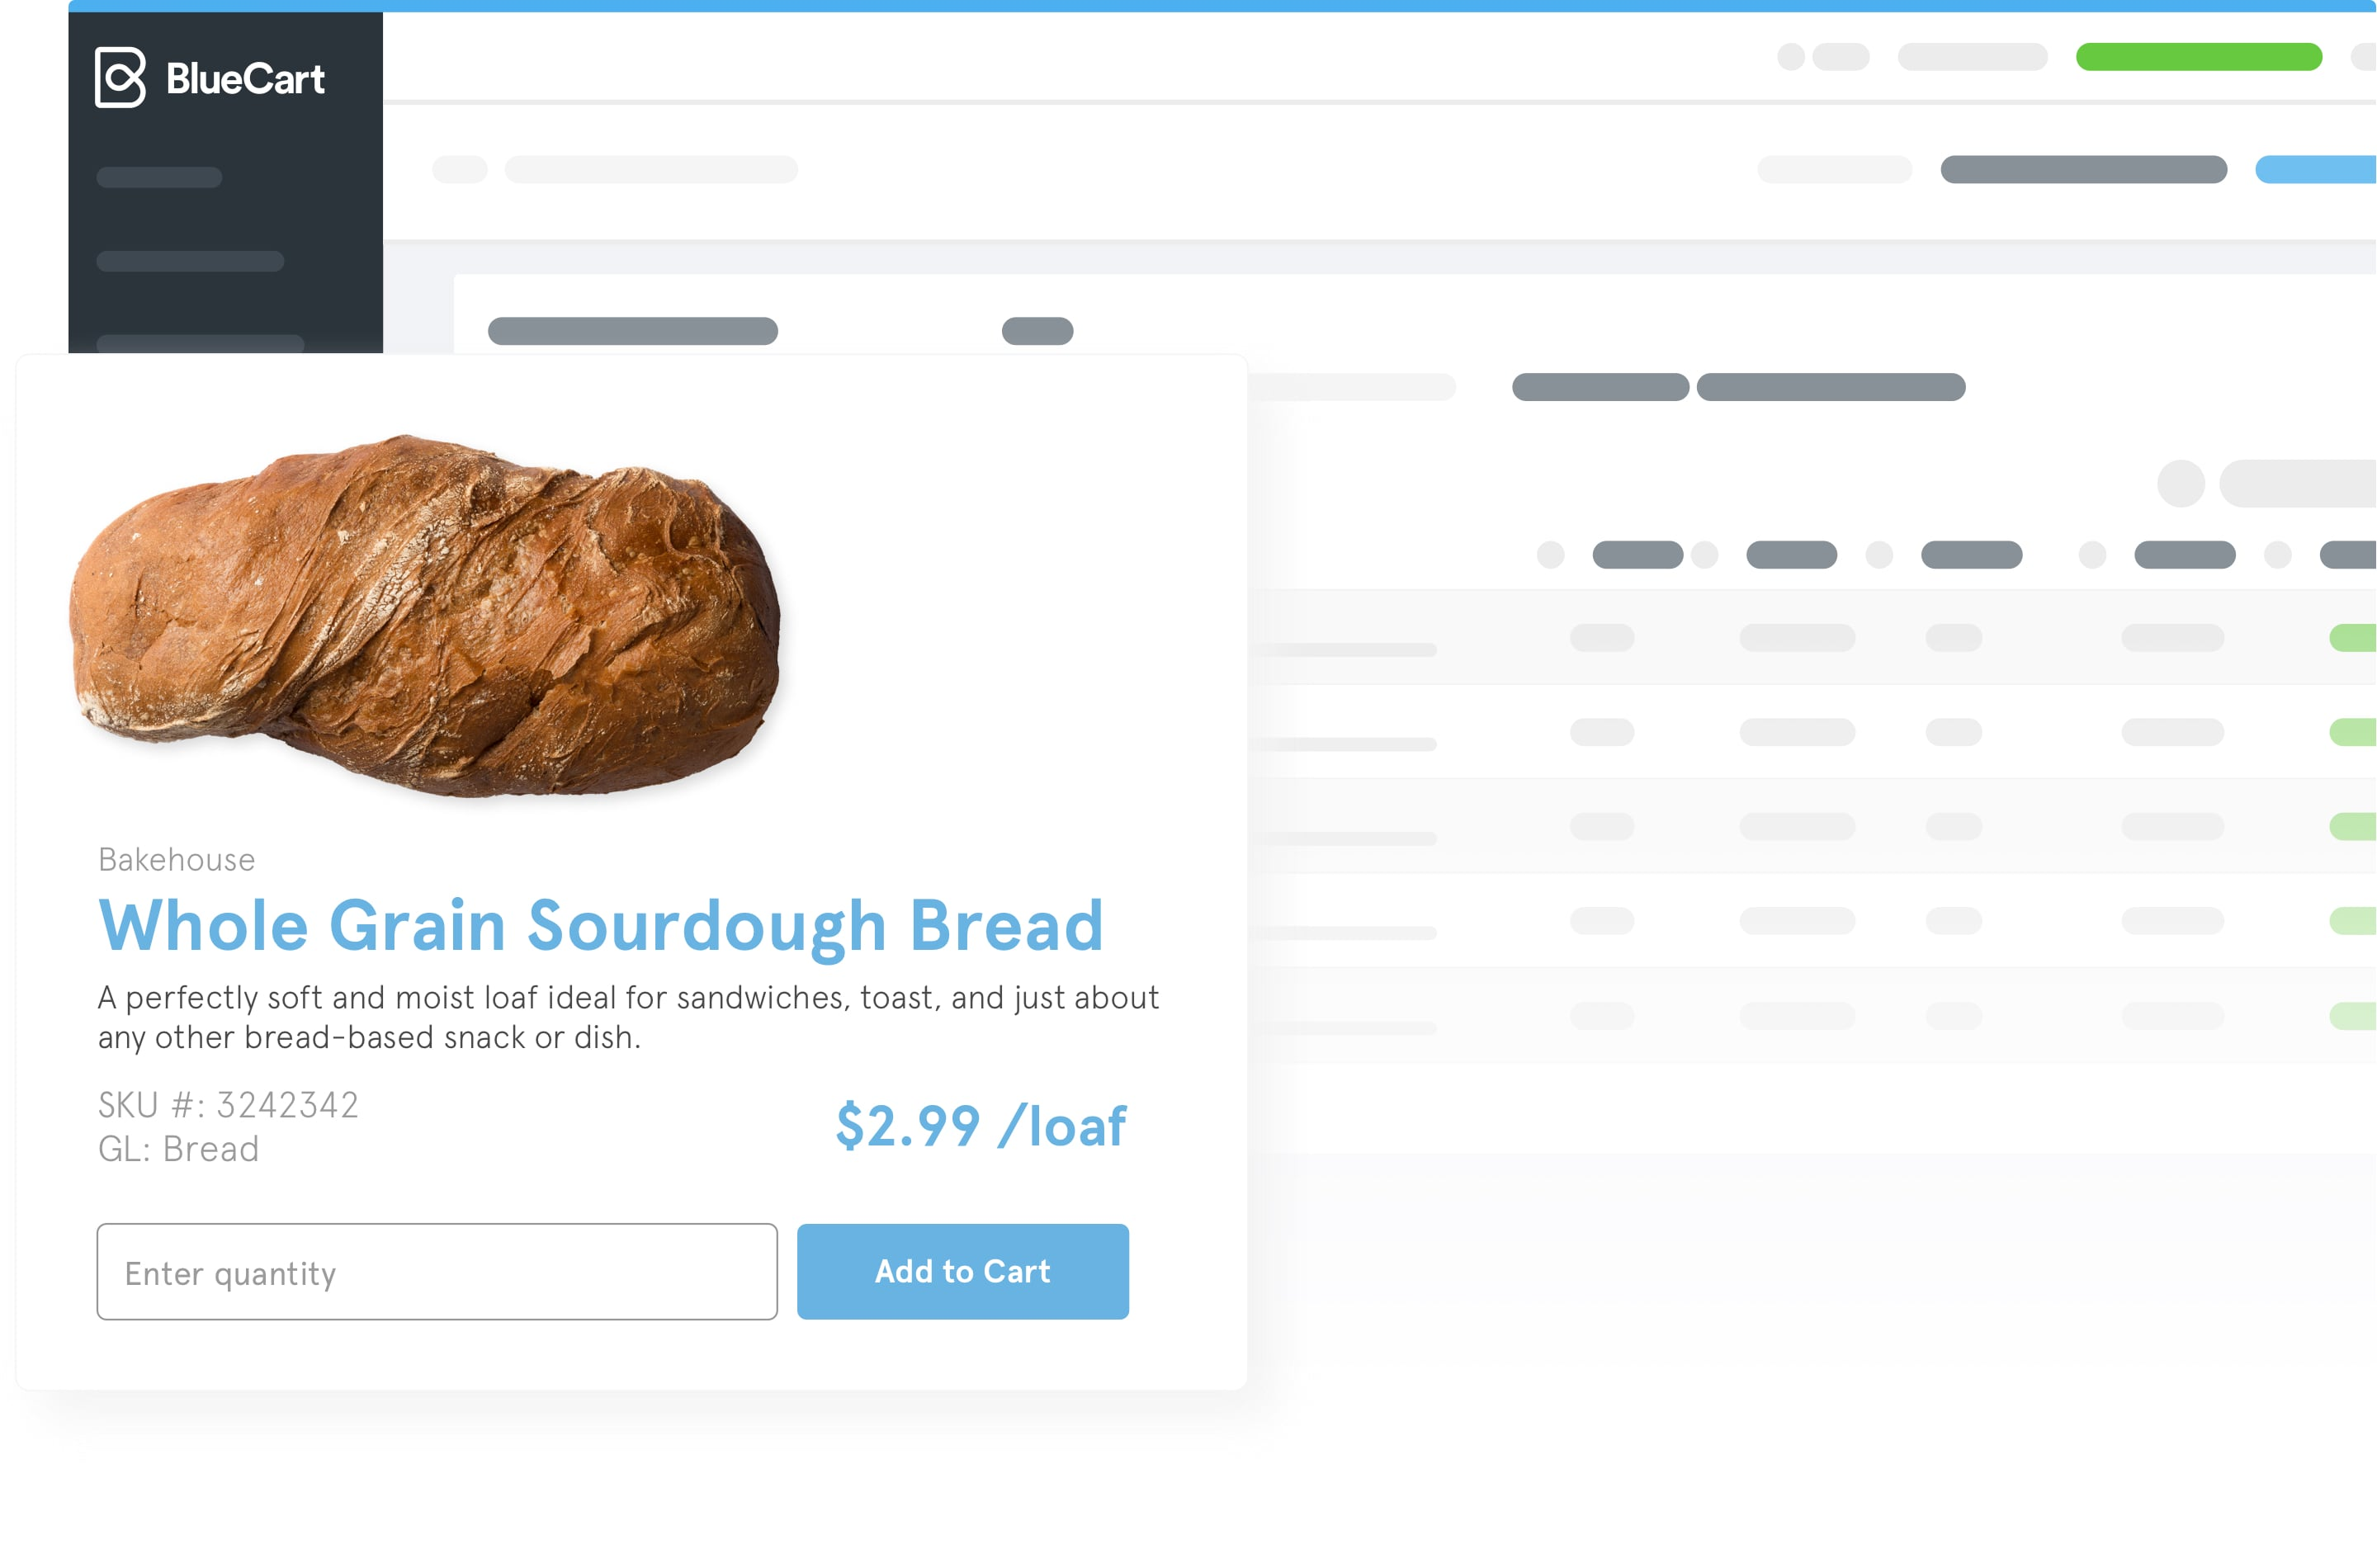 A preview of how bread might appear within the BlueCart platform.